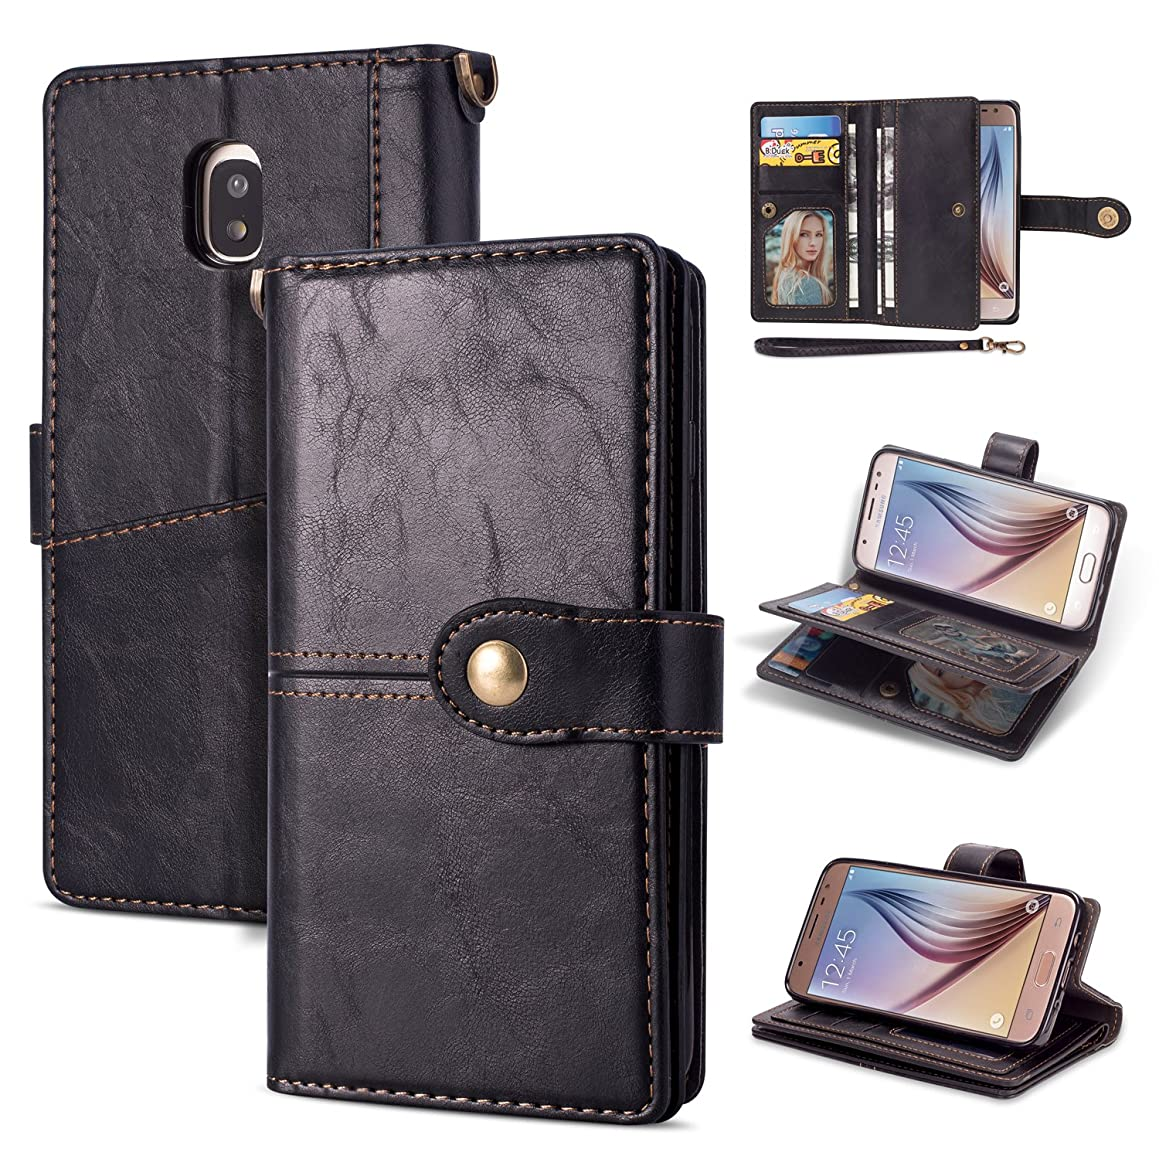 Galaxy J7 2018/J7 Aero/J7 Top/J7 Refine/J7 Star/J7 Crown/J7 Aura Case,AMASELL Retro Multifunctional Premium PU Leather Case with Card Slot & Wrist Strap Carrying Folio Flip Cover for J7 2018,Black